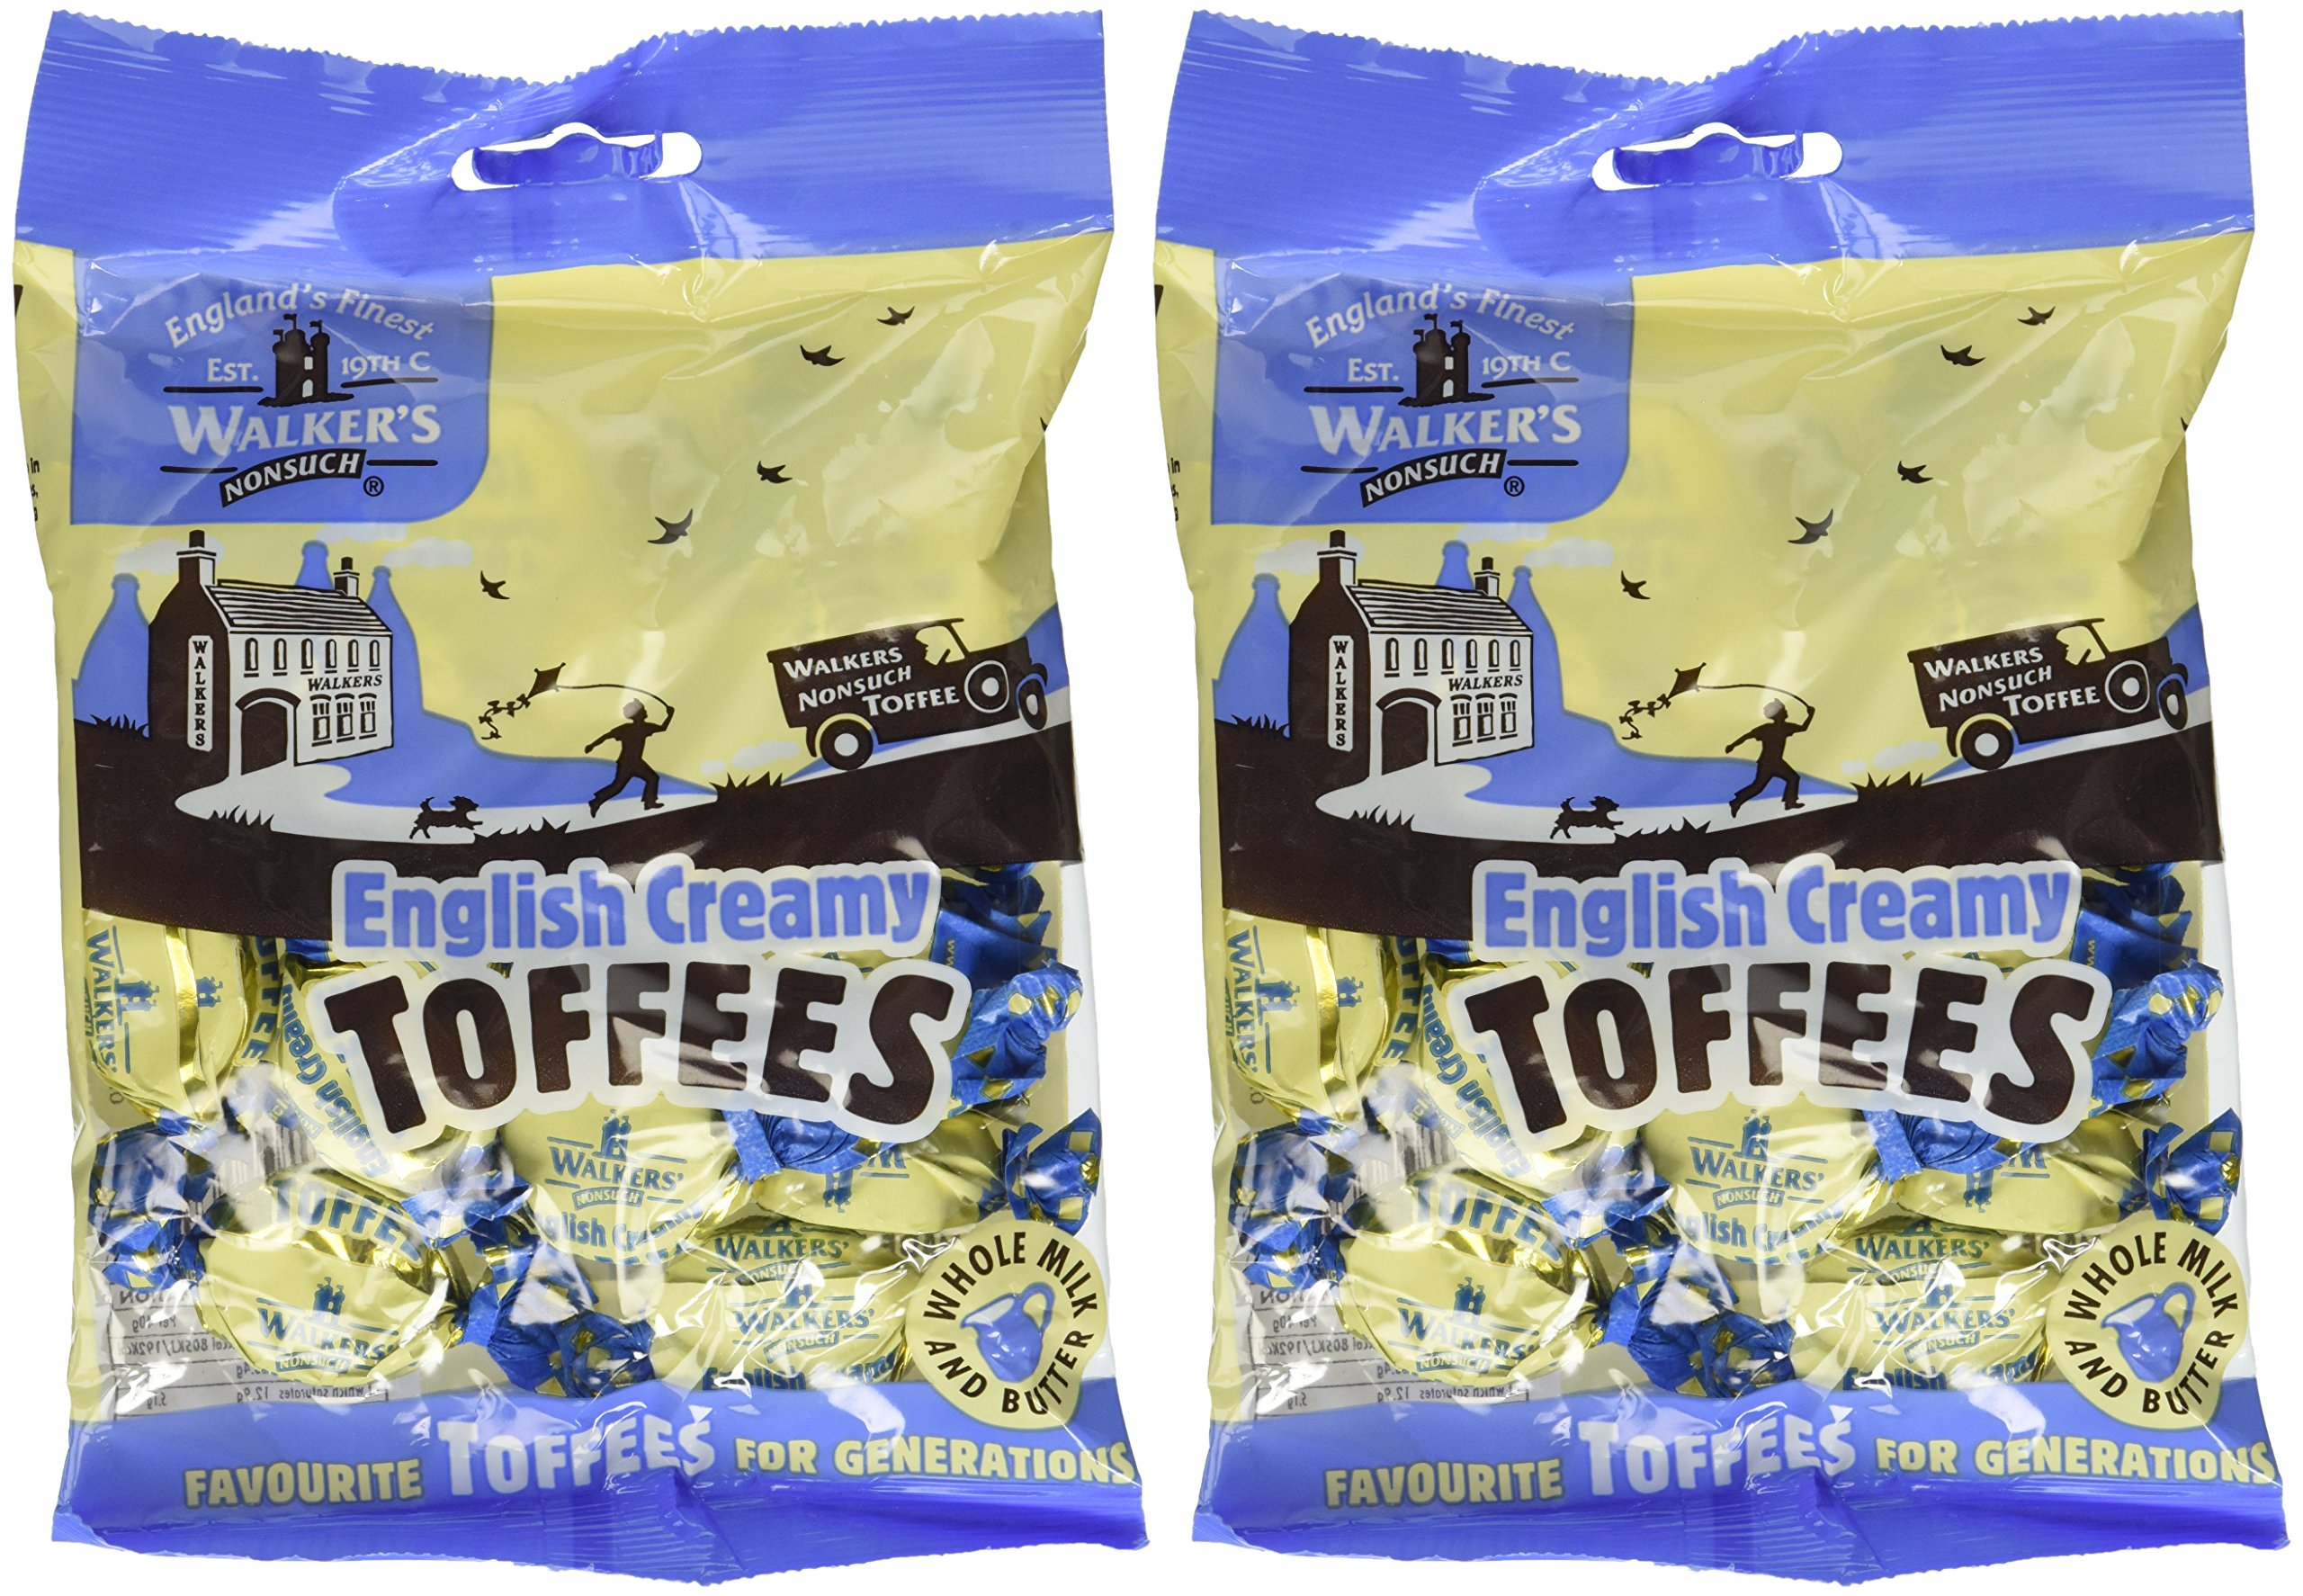 Walkers Nonsuch English Creamy Toffees, 5.3